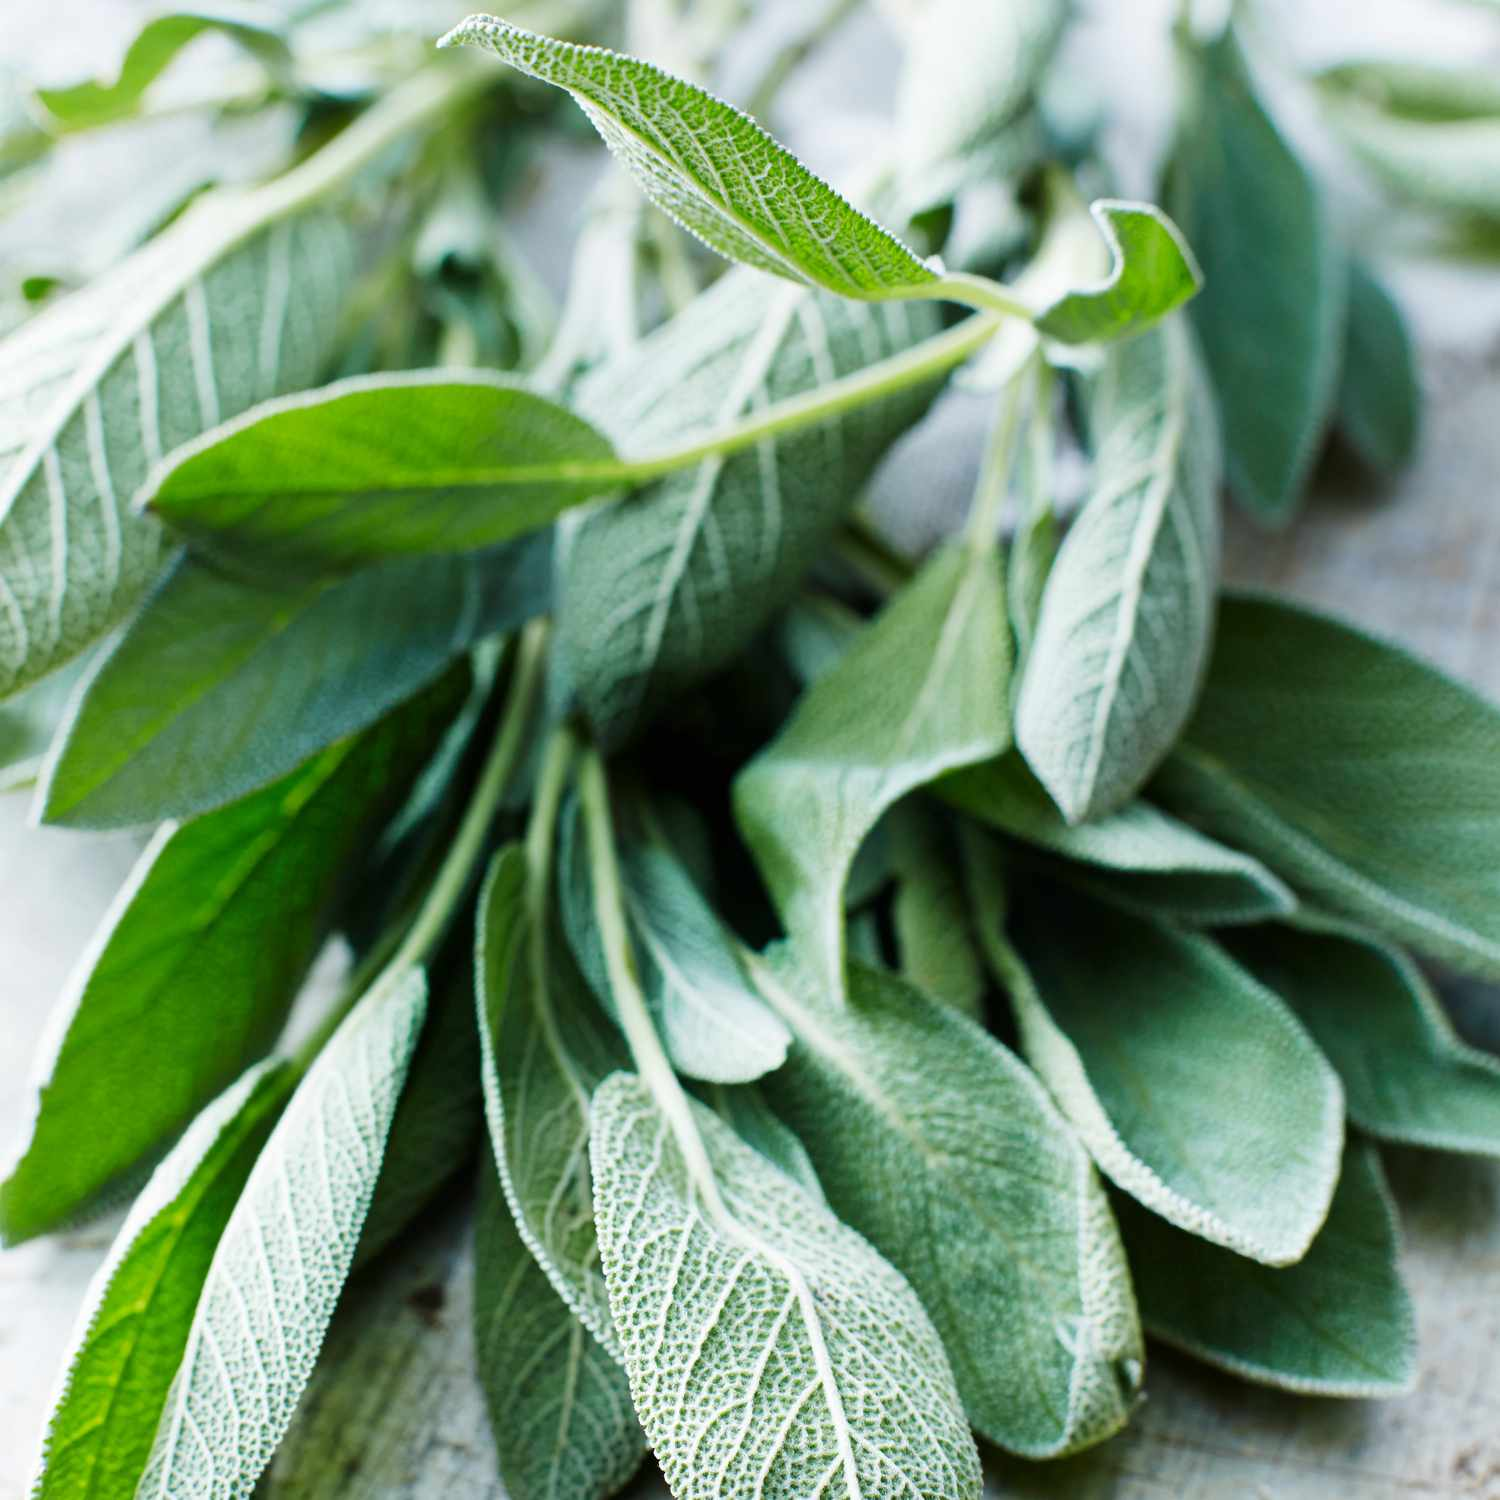 bunch of sage leaves on wooden table